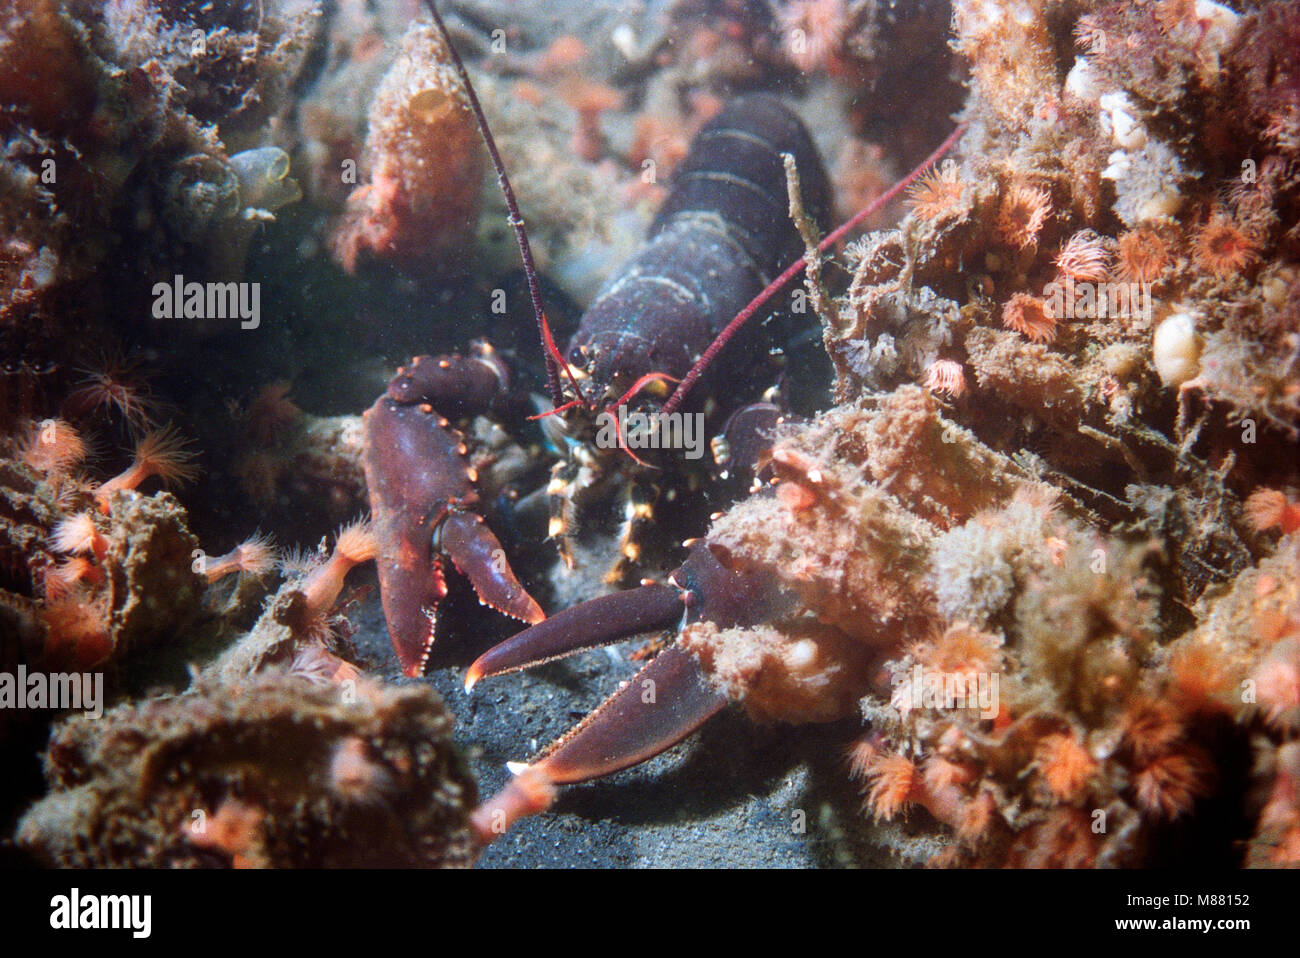 Lobster walking around with some red anemones around it - Stock Image